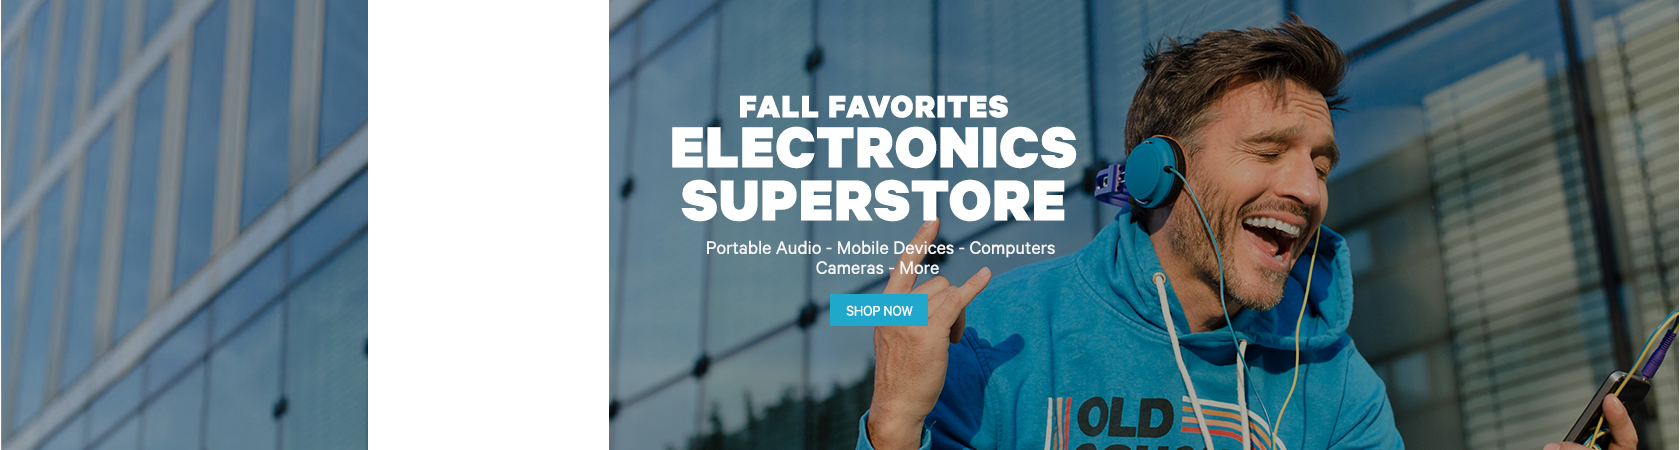 Fall Favorites 2016 Electronics Event